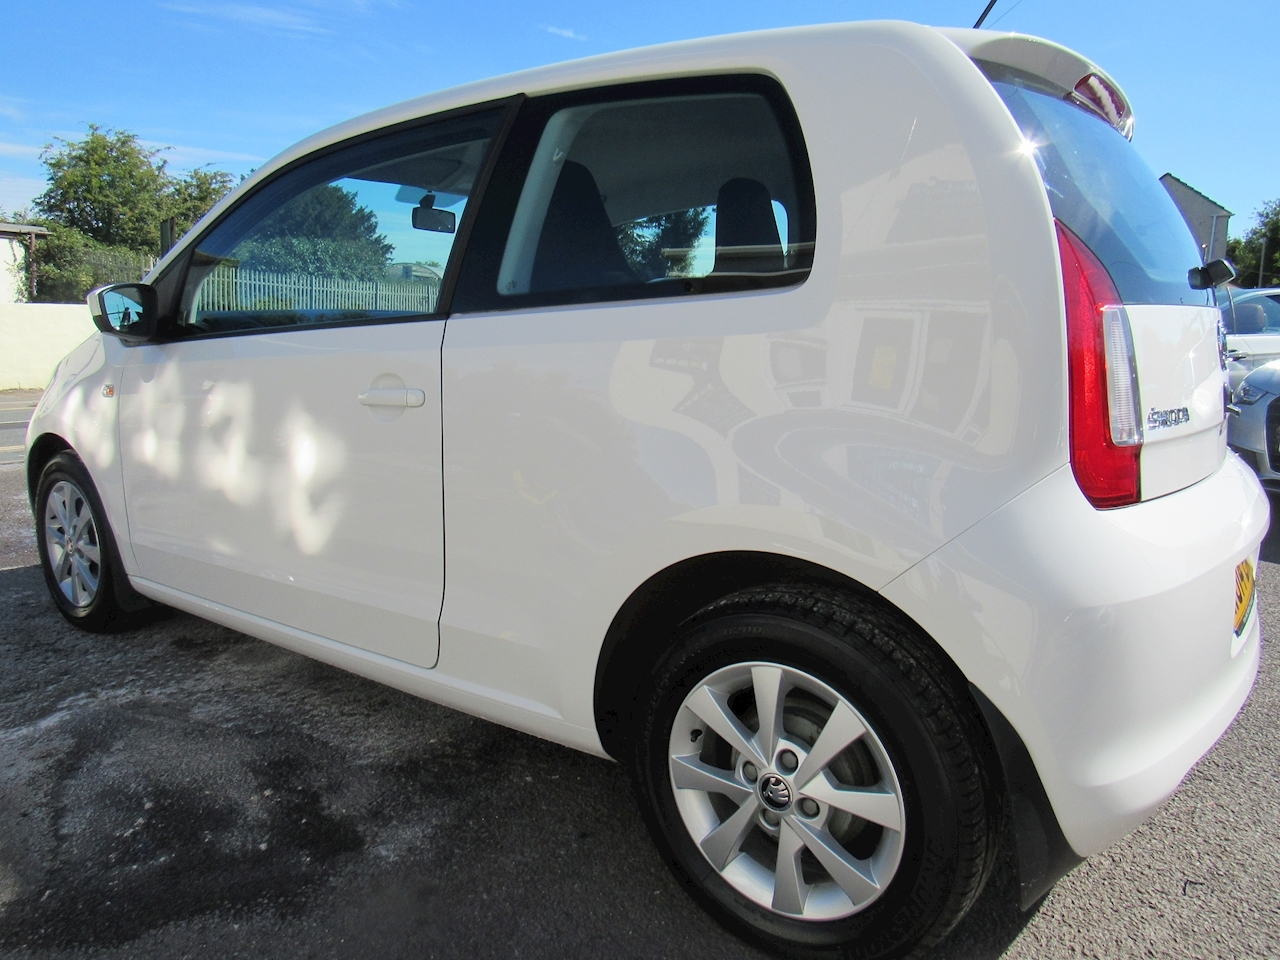 SKODA Citigo Elegance Hatchback 1.0 Manual Petrol